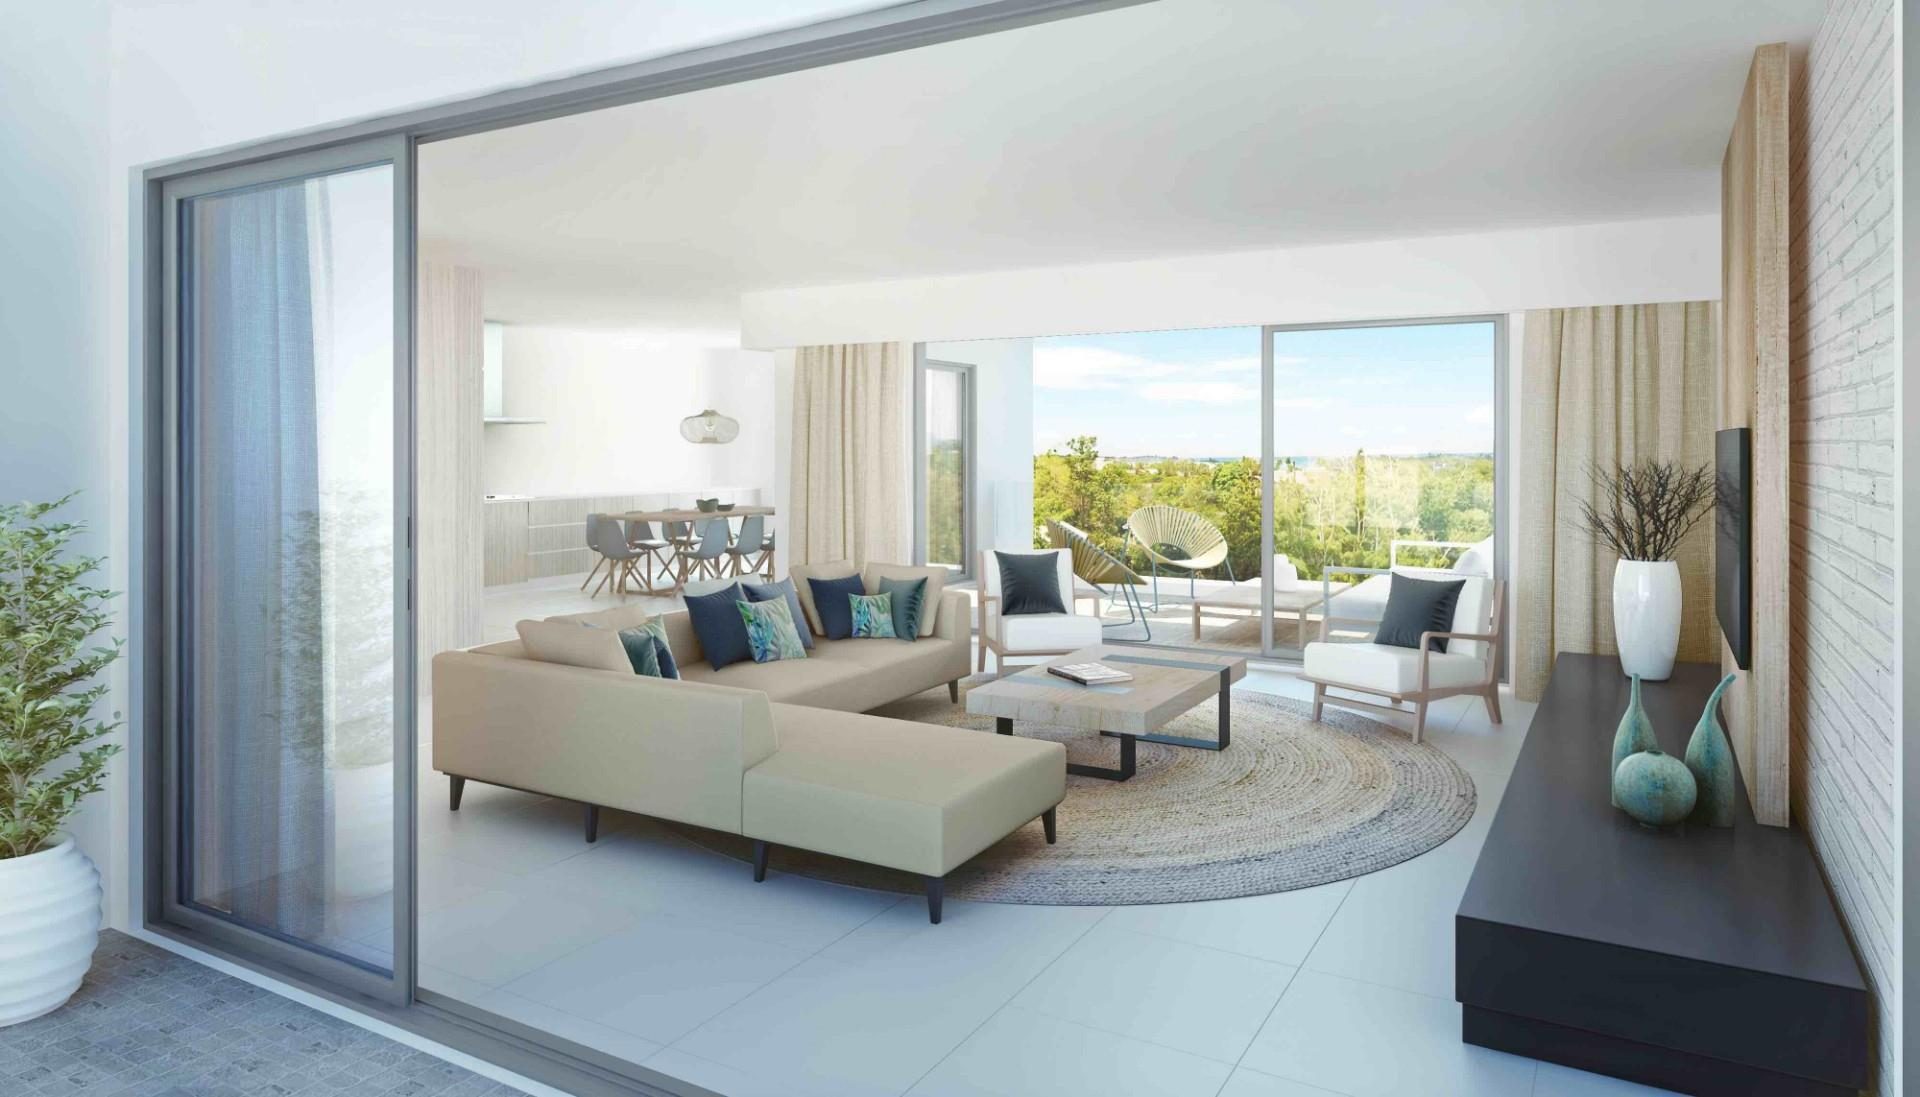 3 Bedroom Apartment / Flat For Sale in Plaine Magnien